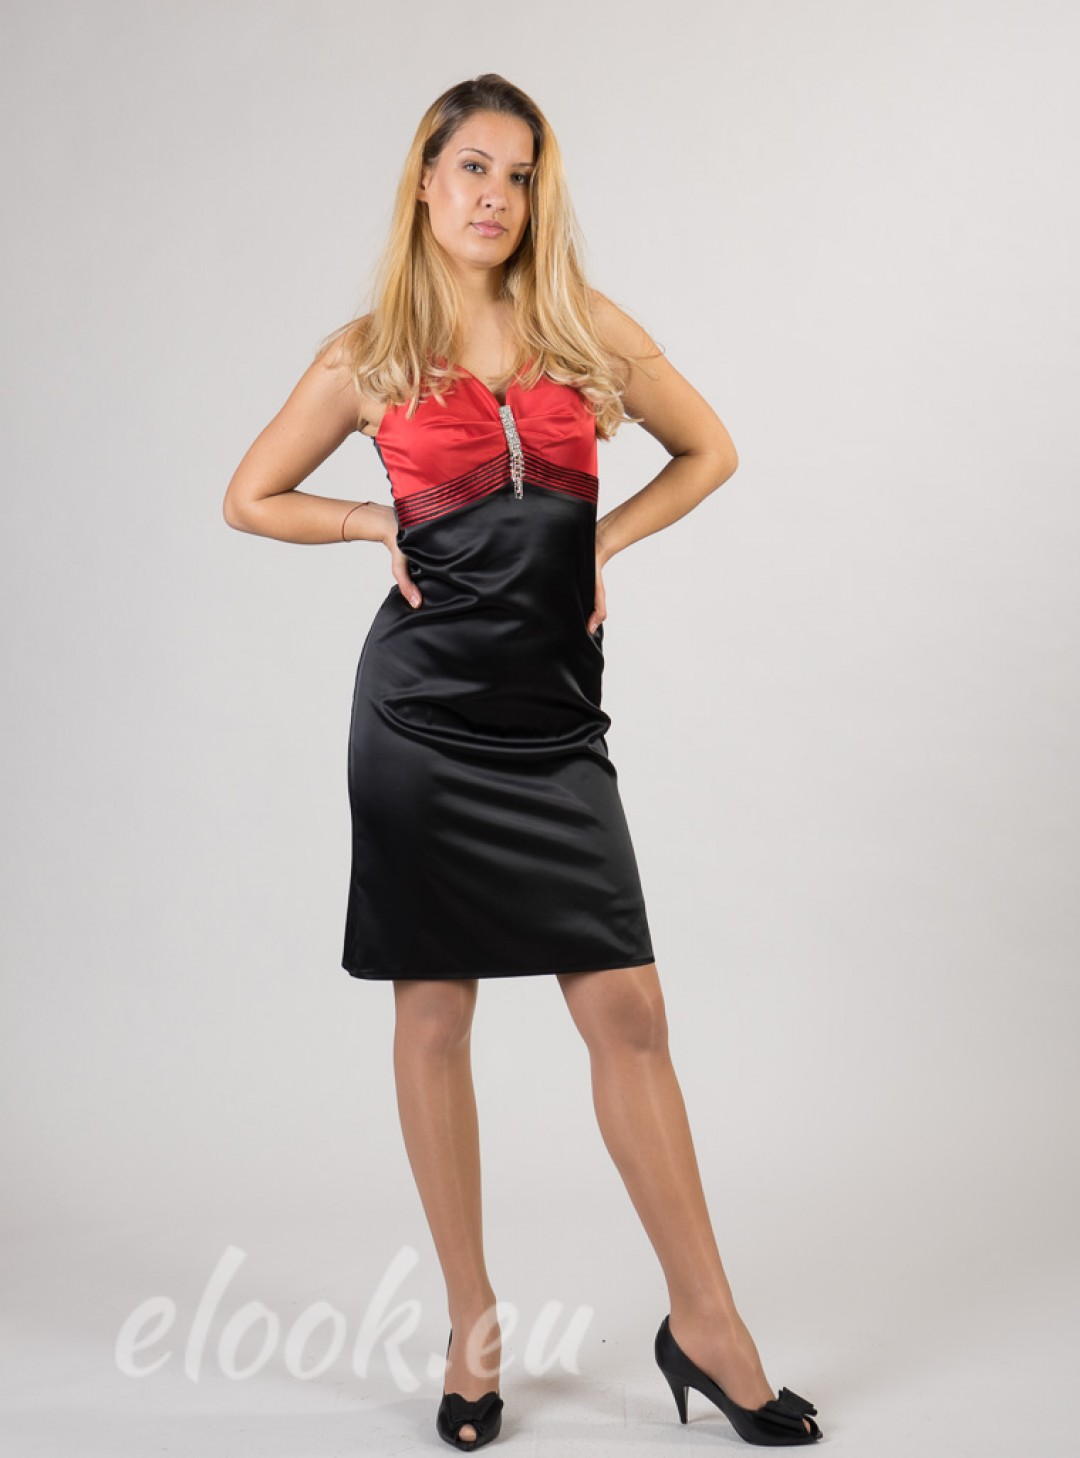 Satin dress in a party or clu...